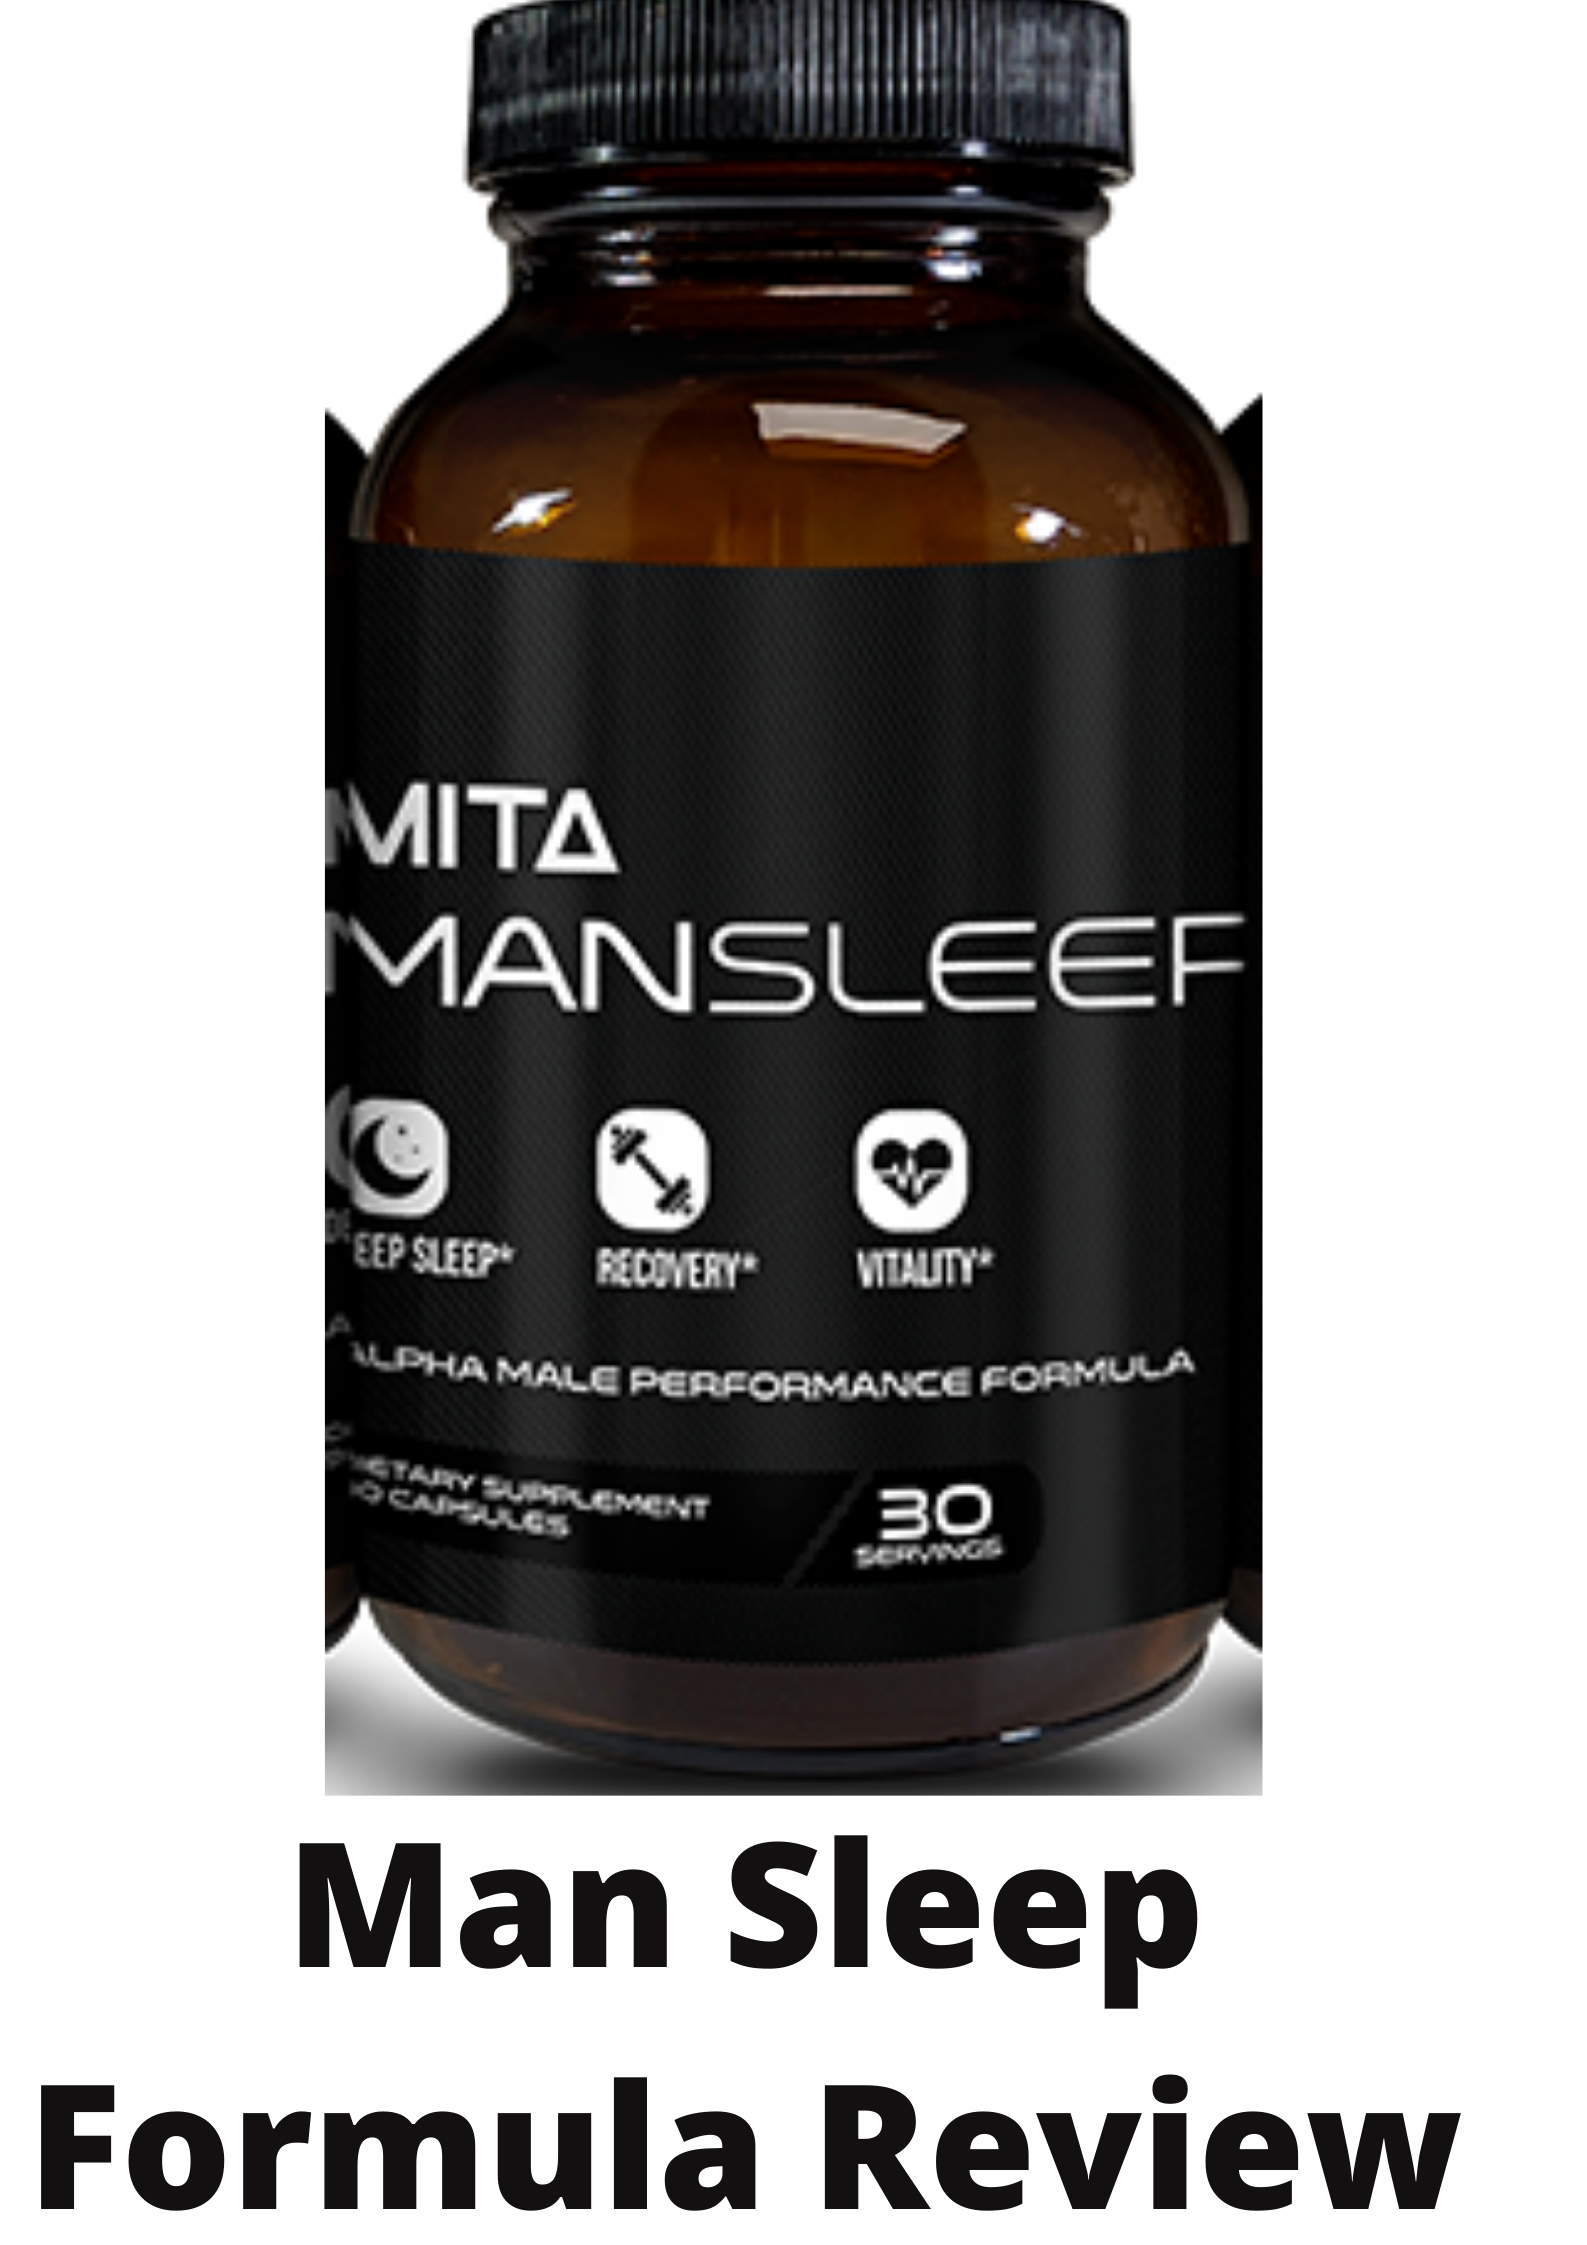 Man Sleep Formula Reviews